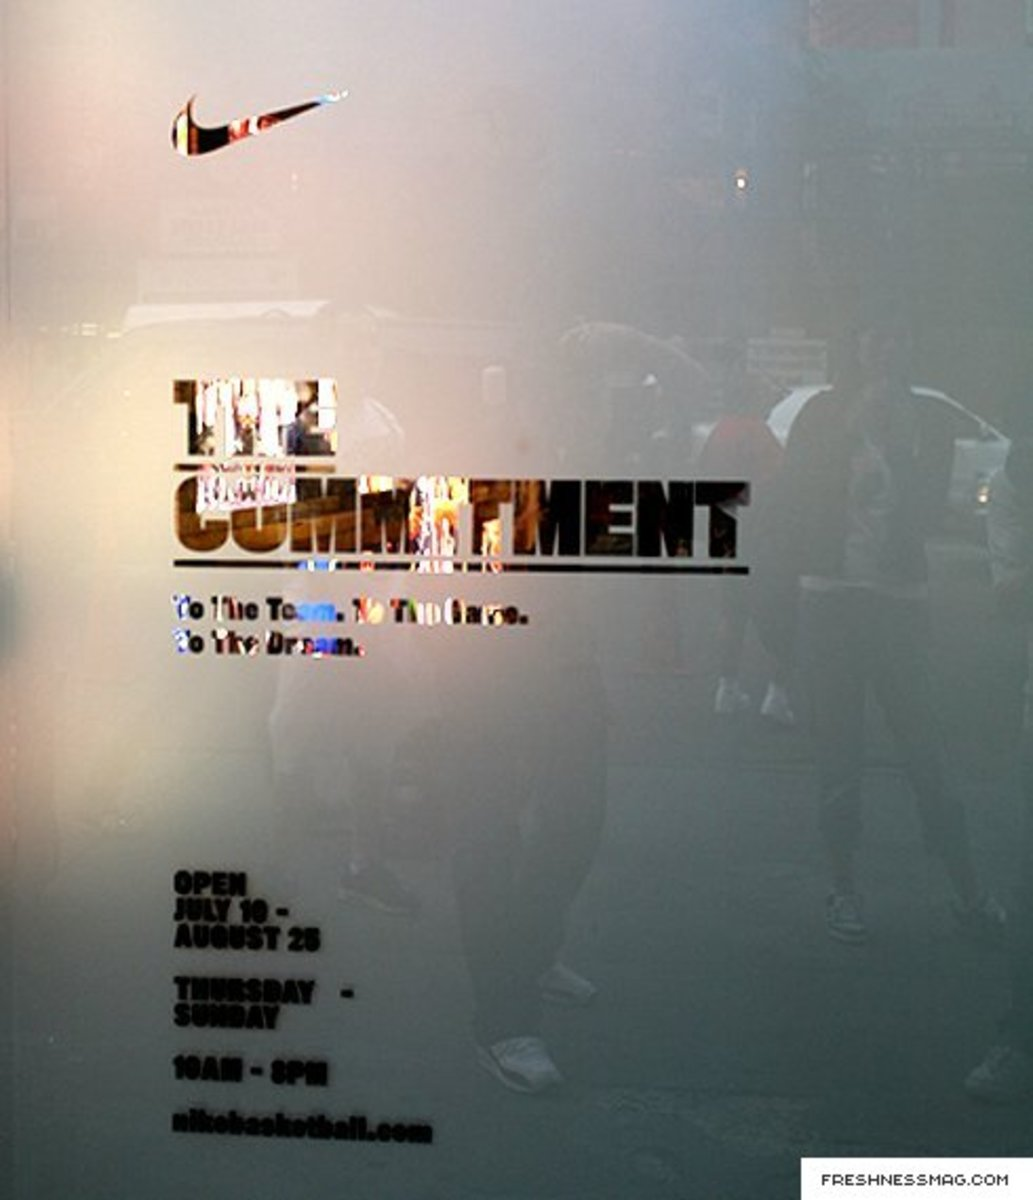 Nike Basketball - The Commitment